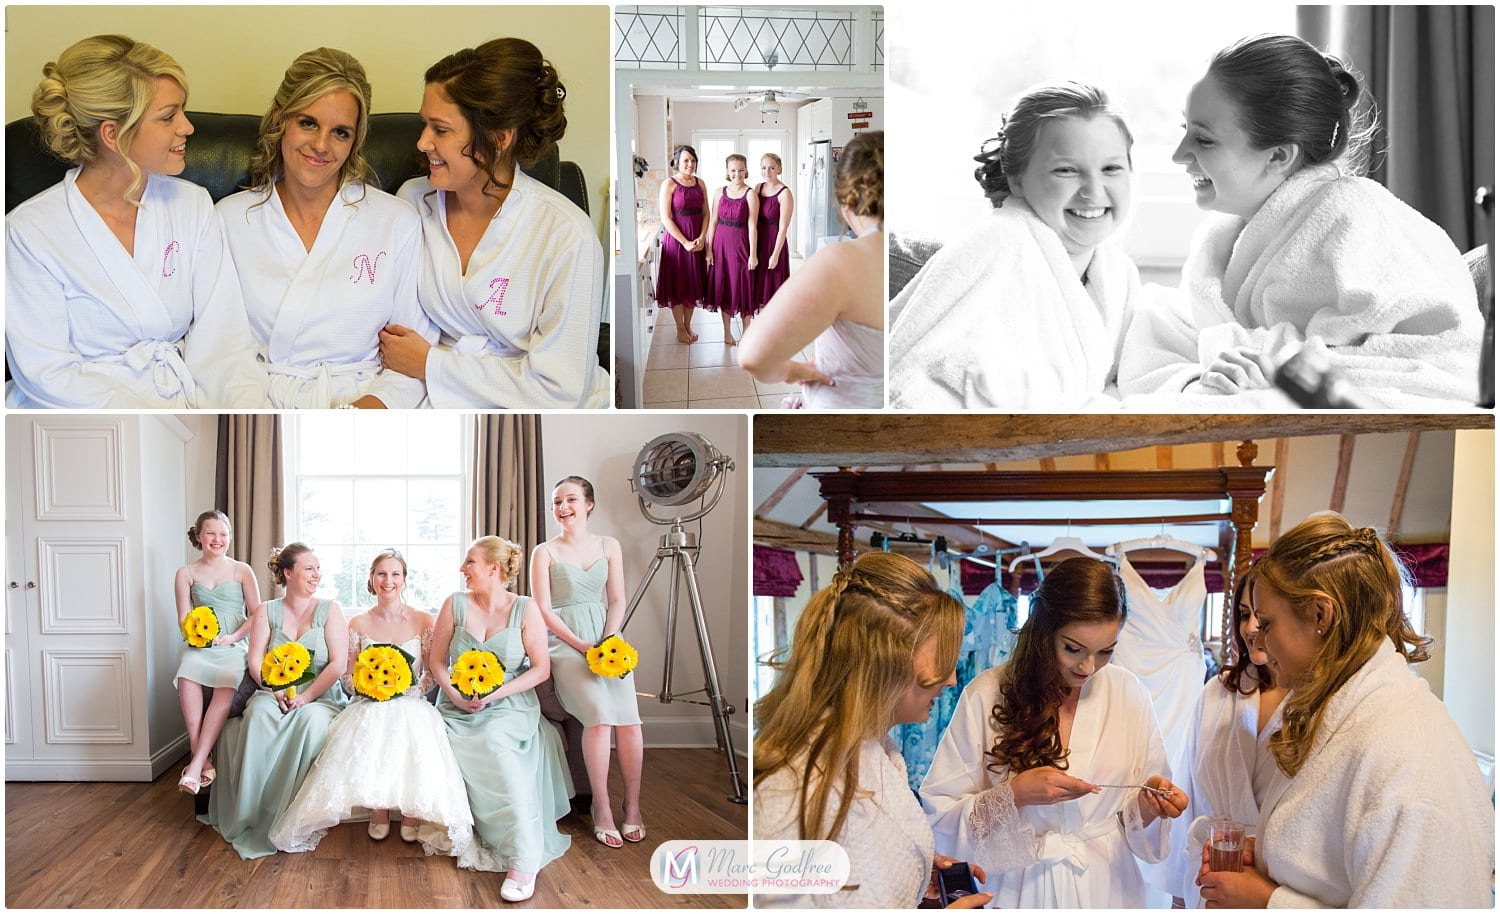 wedding photos you probably didn't considerchilling with bridesmaids